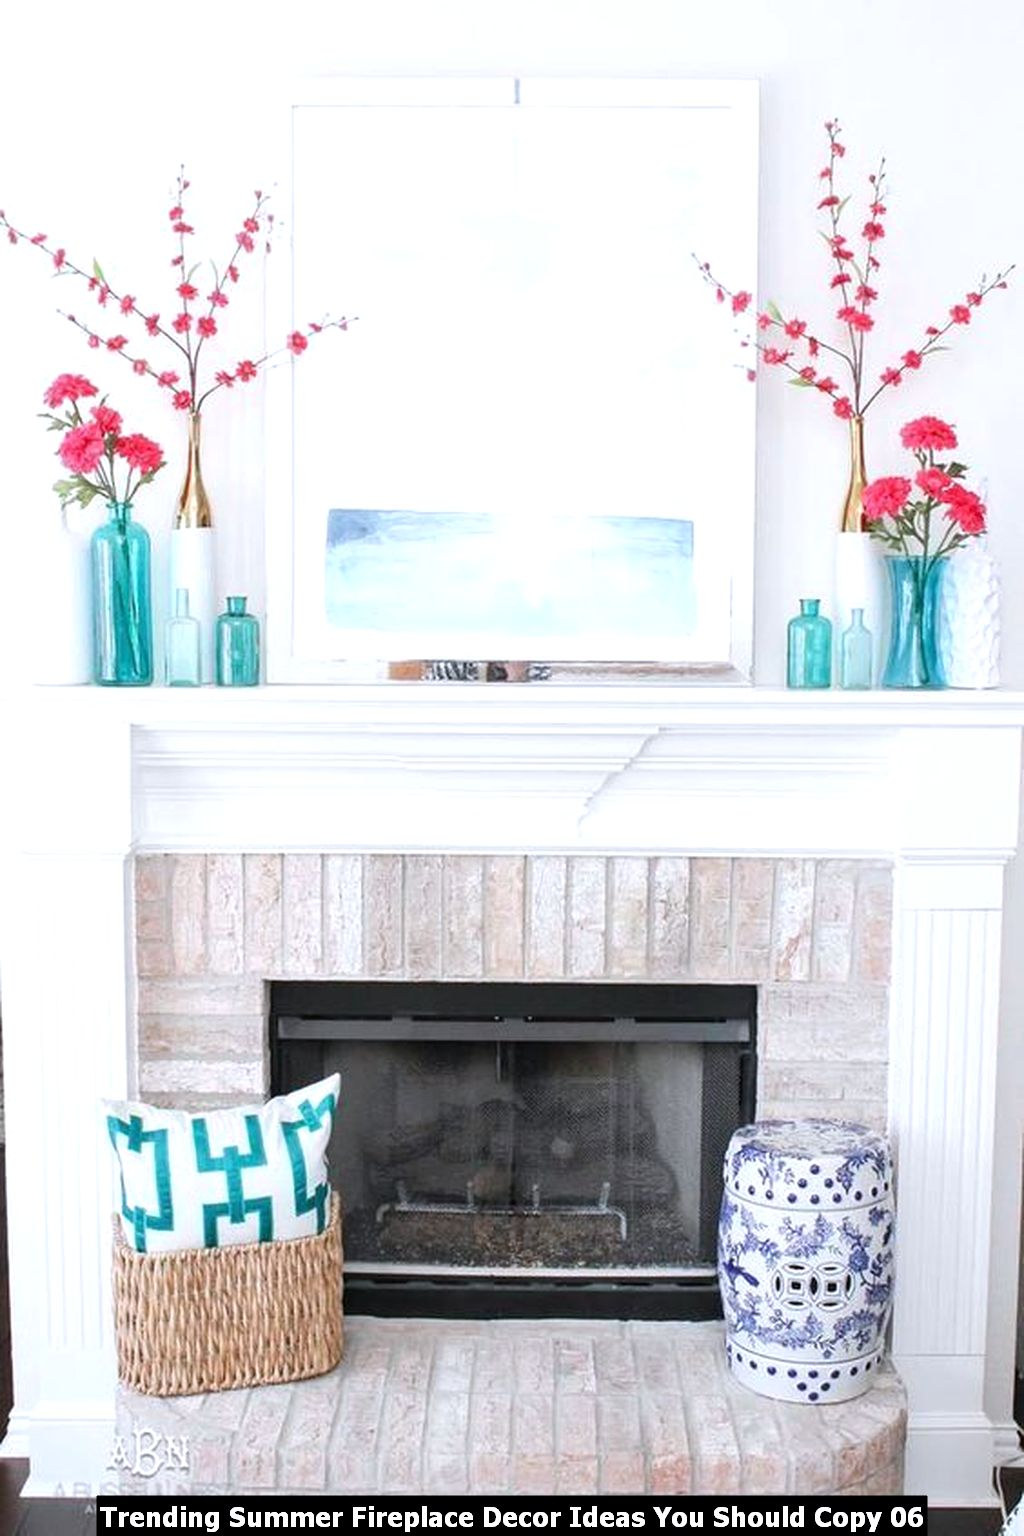 Trending Summer Fireplace Decor Ideas You Should Copy 06